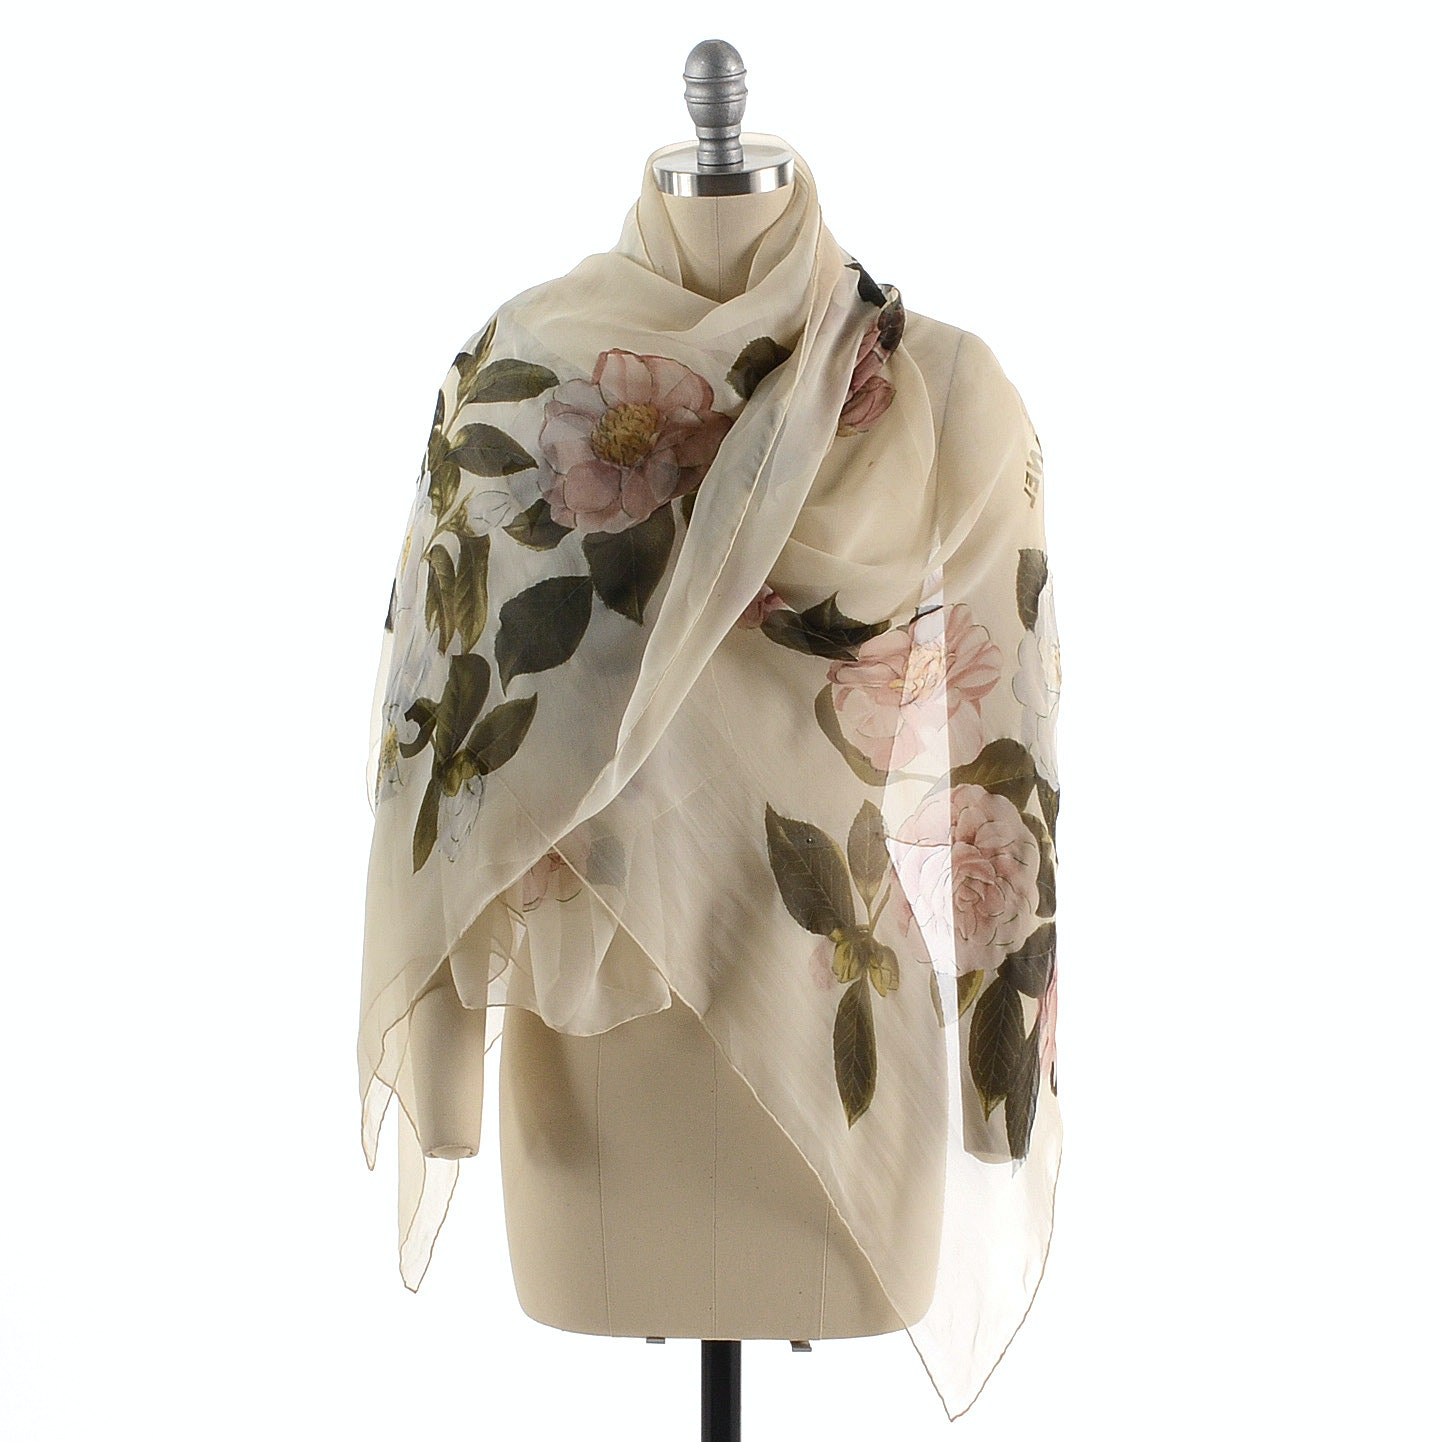 Chanel Silk Chiffon Scarf in a Multicolored Rose Print